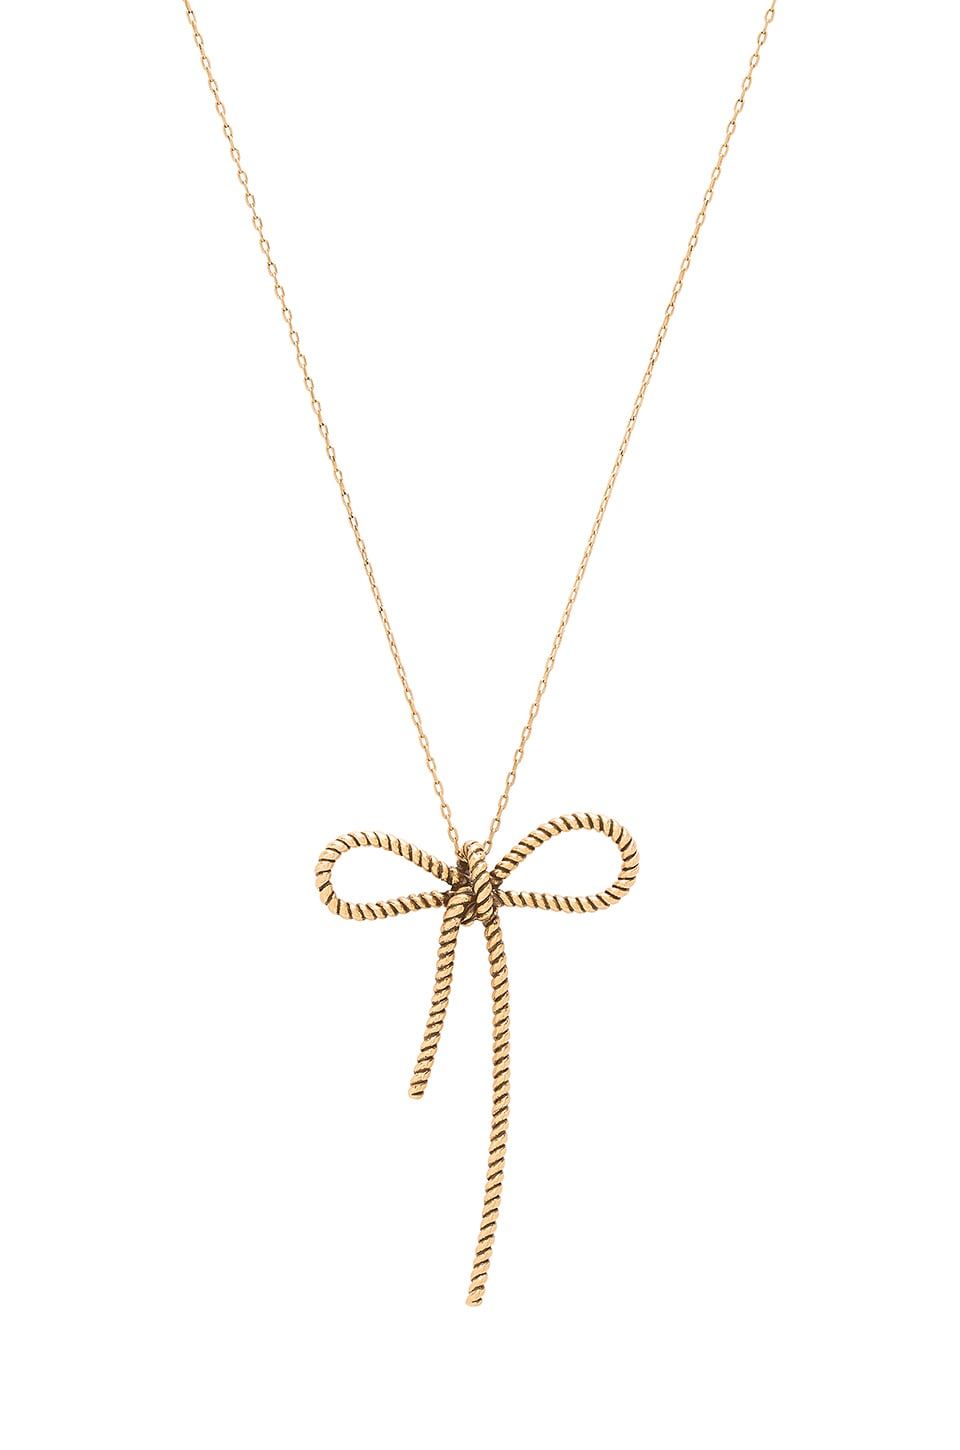 Marc Jacobs Rope Bow Pendant Necklace in Antique Gold